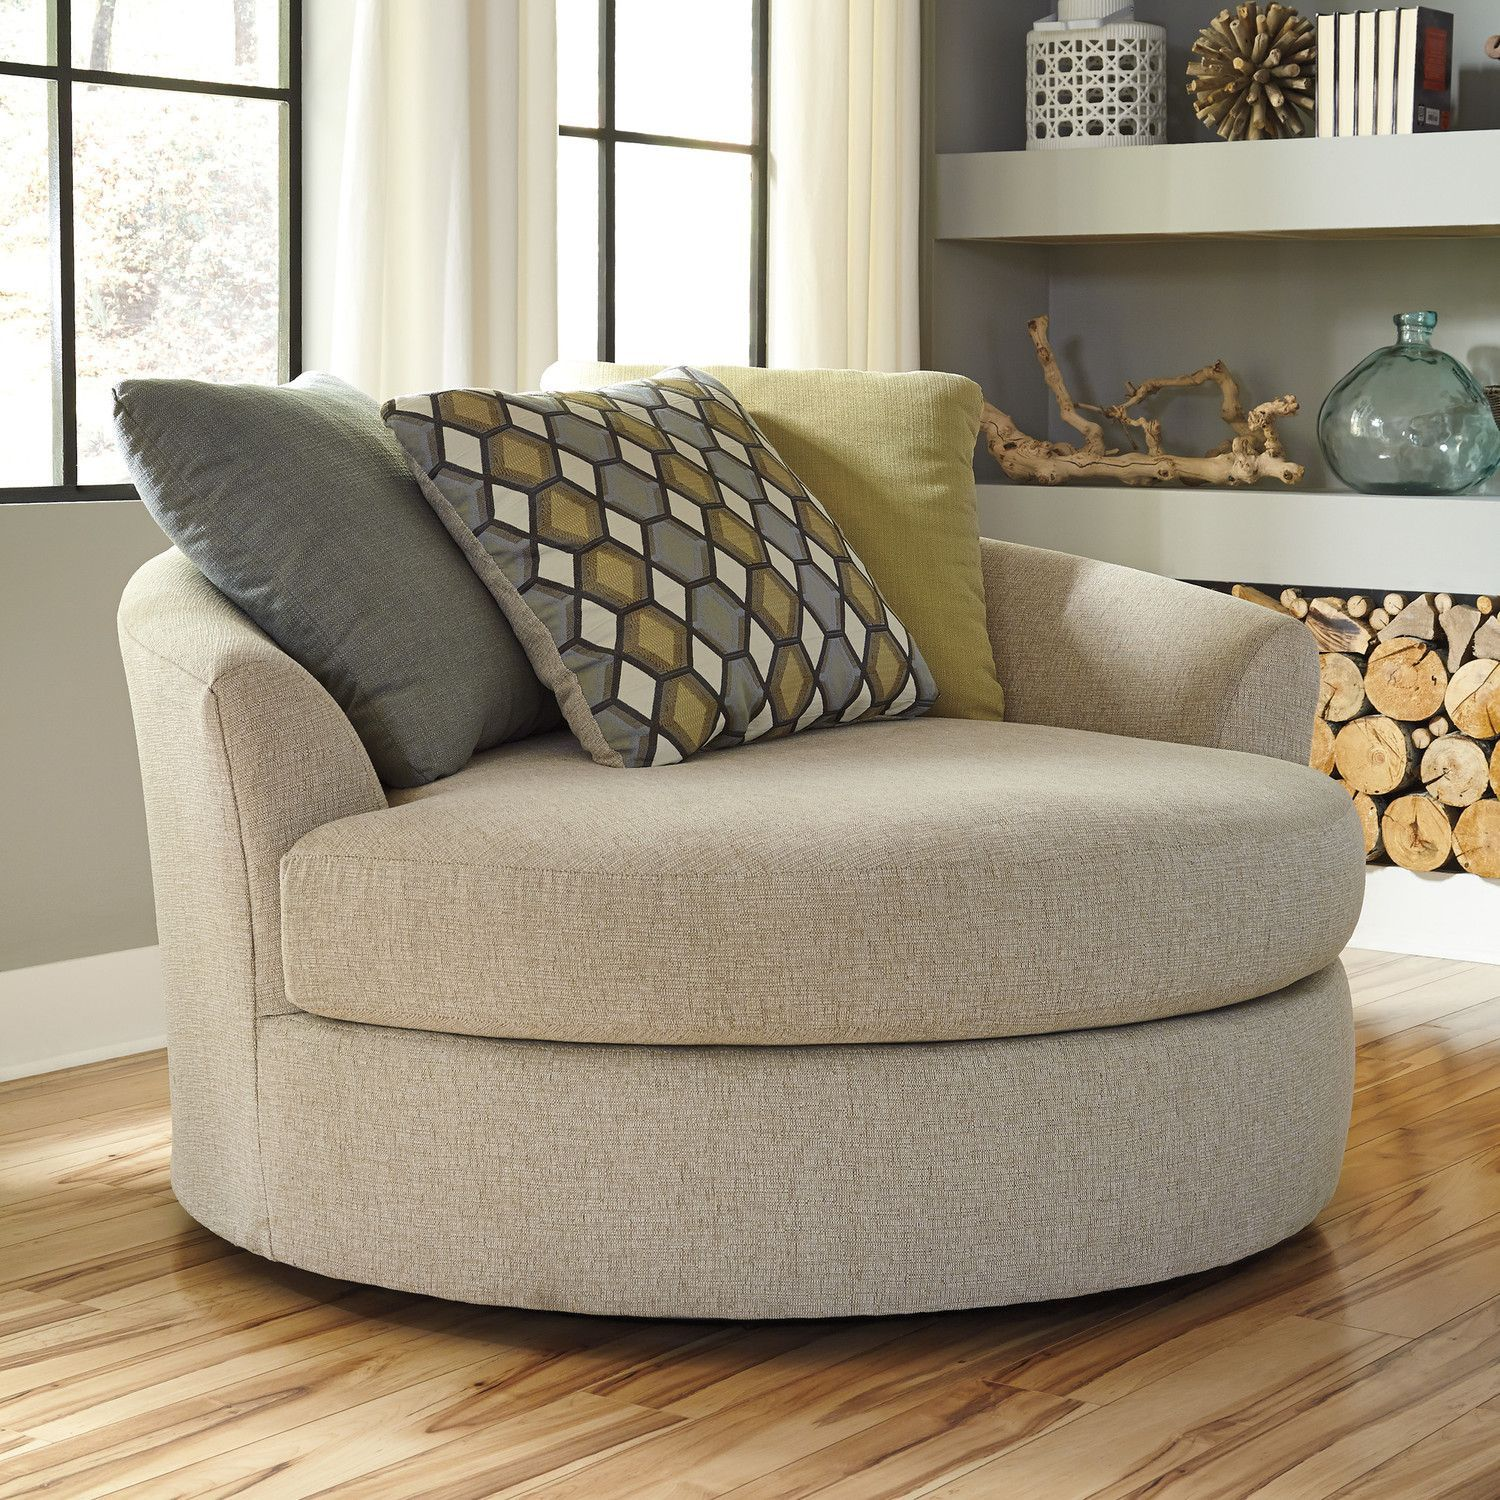 2019 Oversized Accent Chair   Cool Apartment Furniture Check More At  Http://steelbookreview